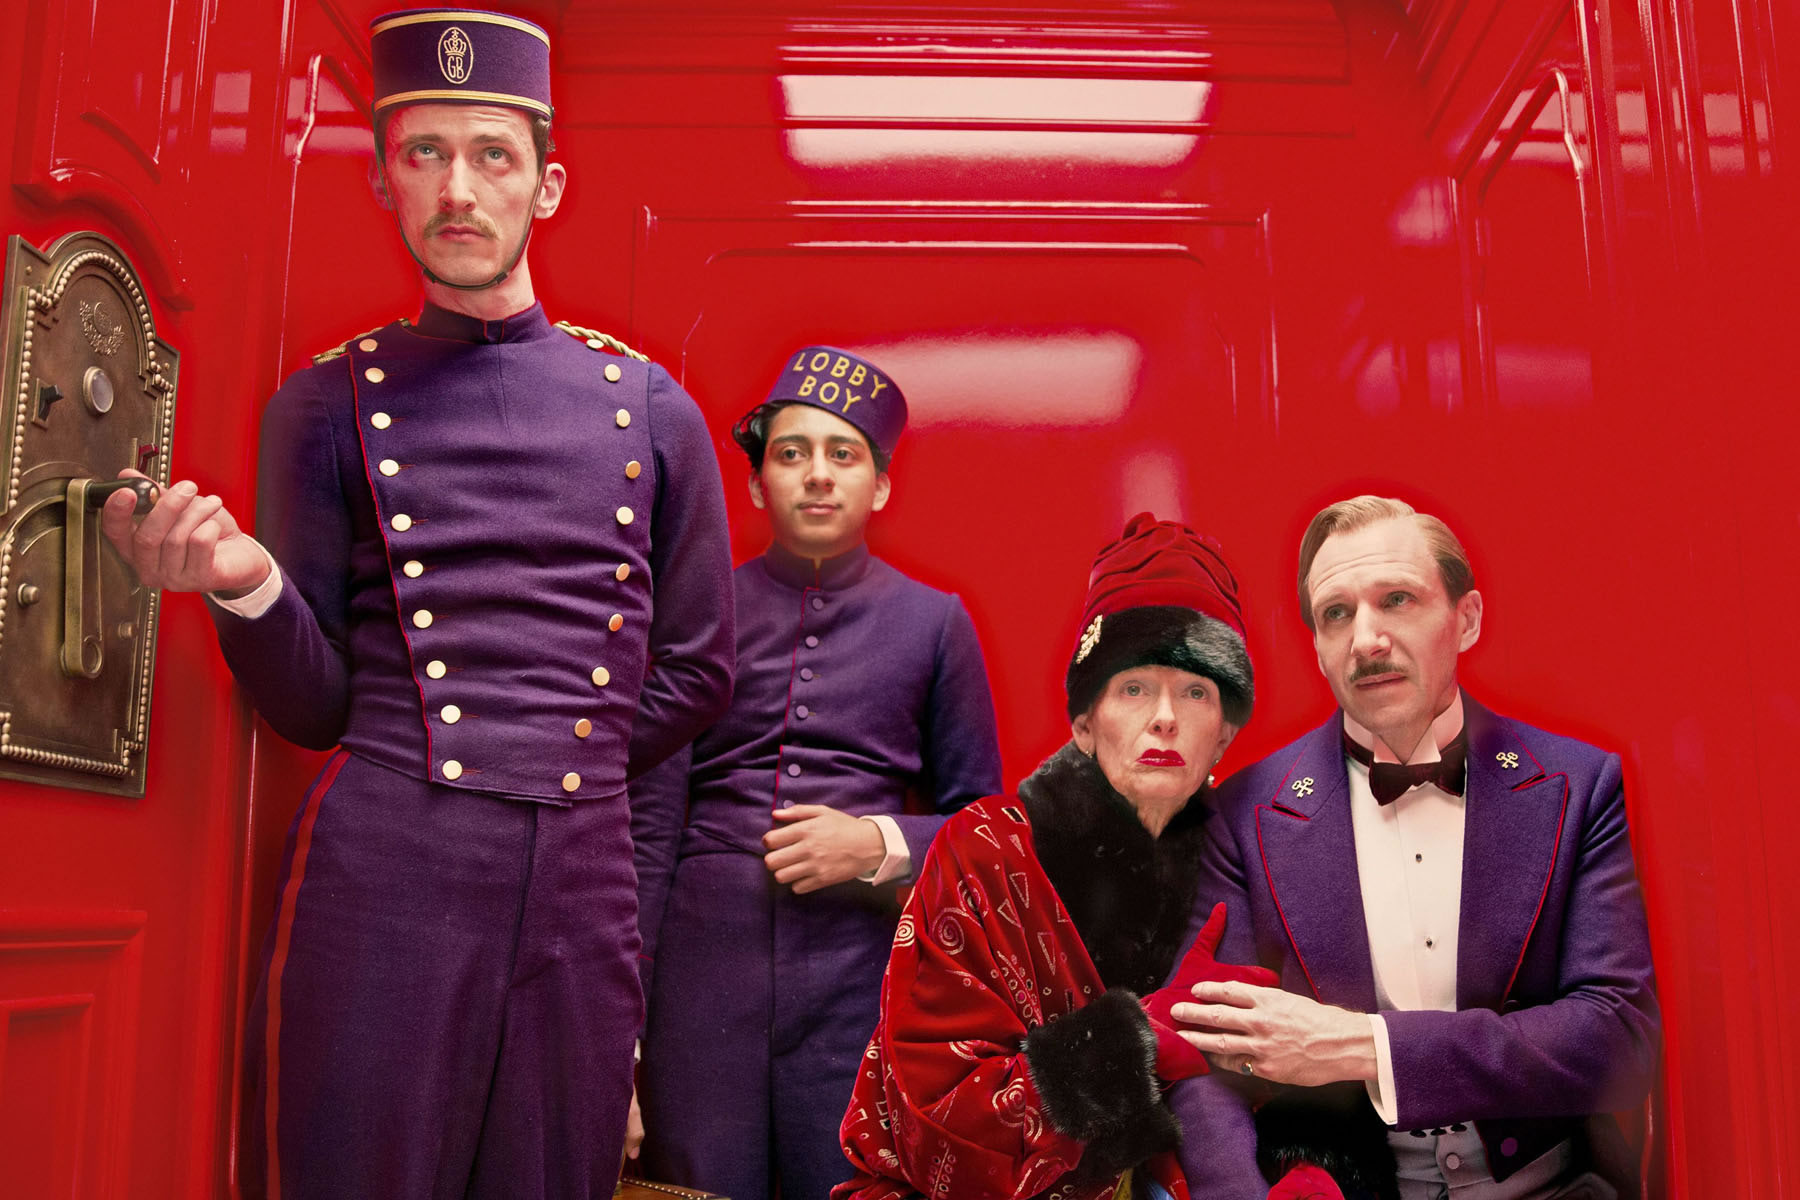 bellboy and passengers in elevator, in The Grand Budapest Hotel